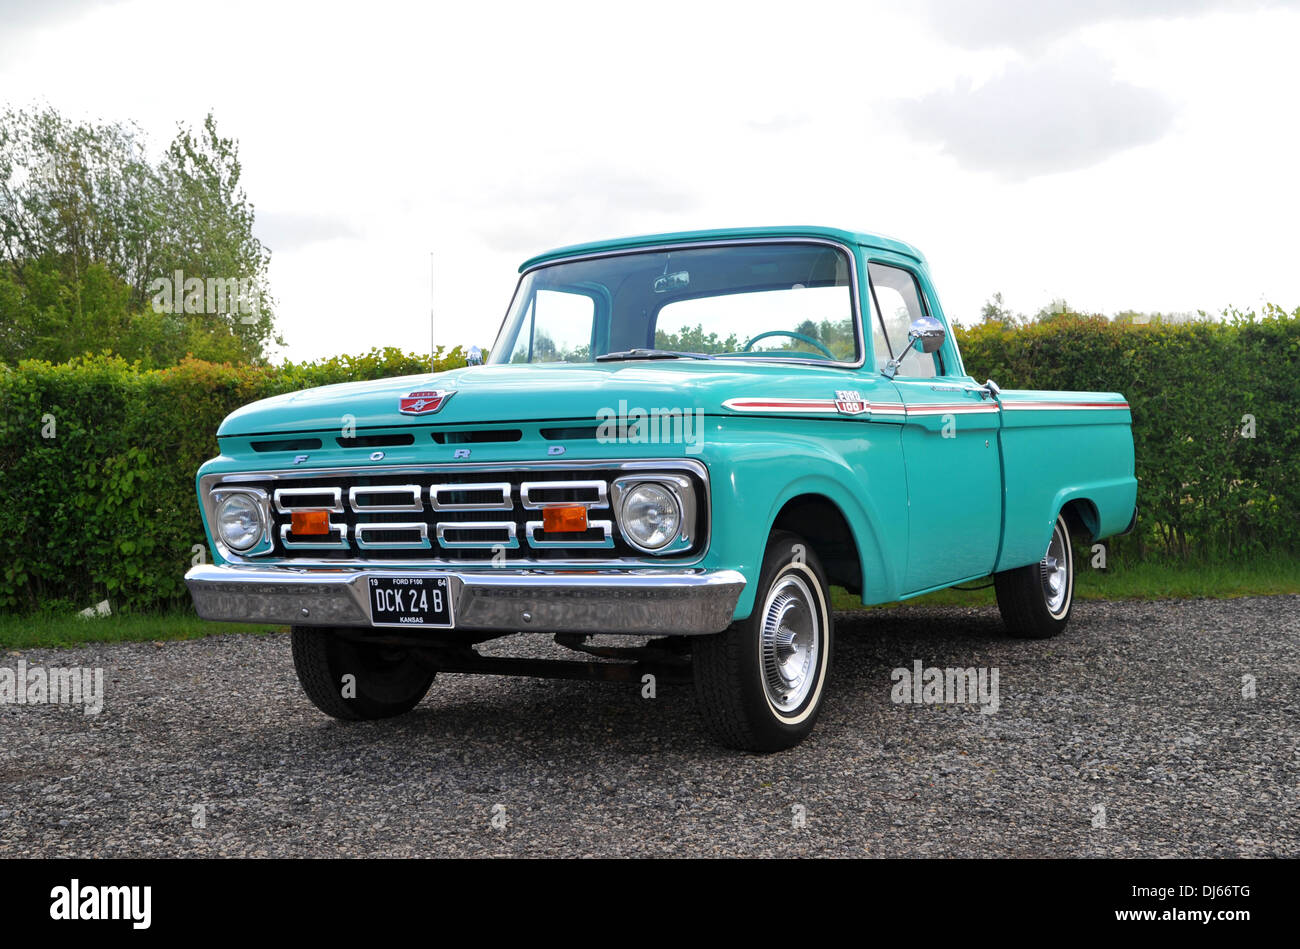 1964 ford f100 classic american pick up truck stock photo royalty free image 62832016 alamy. Black Bedroom Furniture Sets. Home Design Ideas